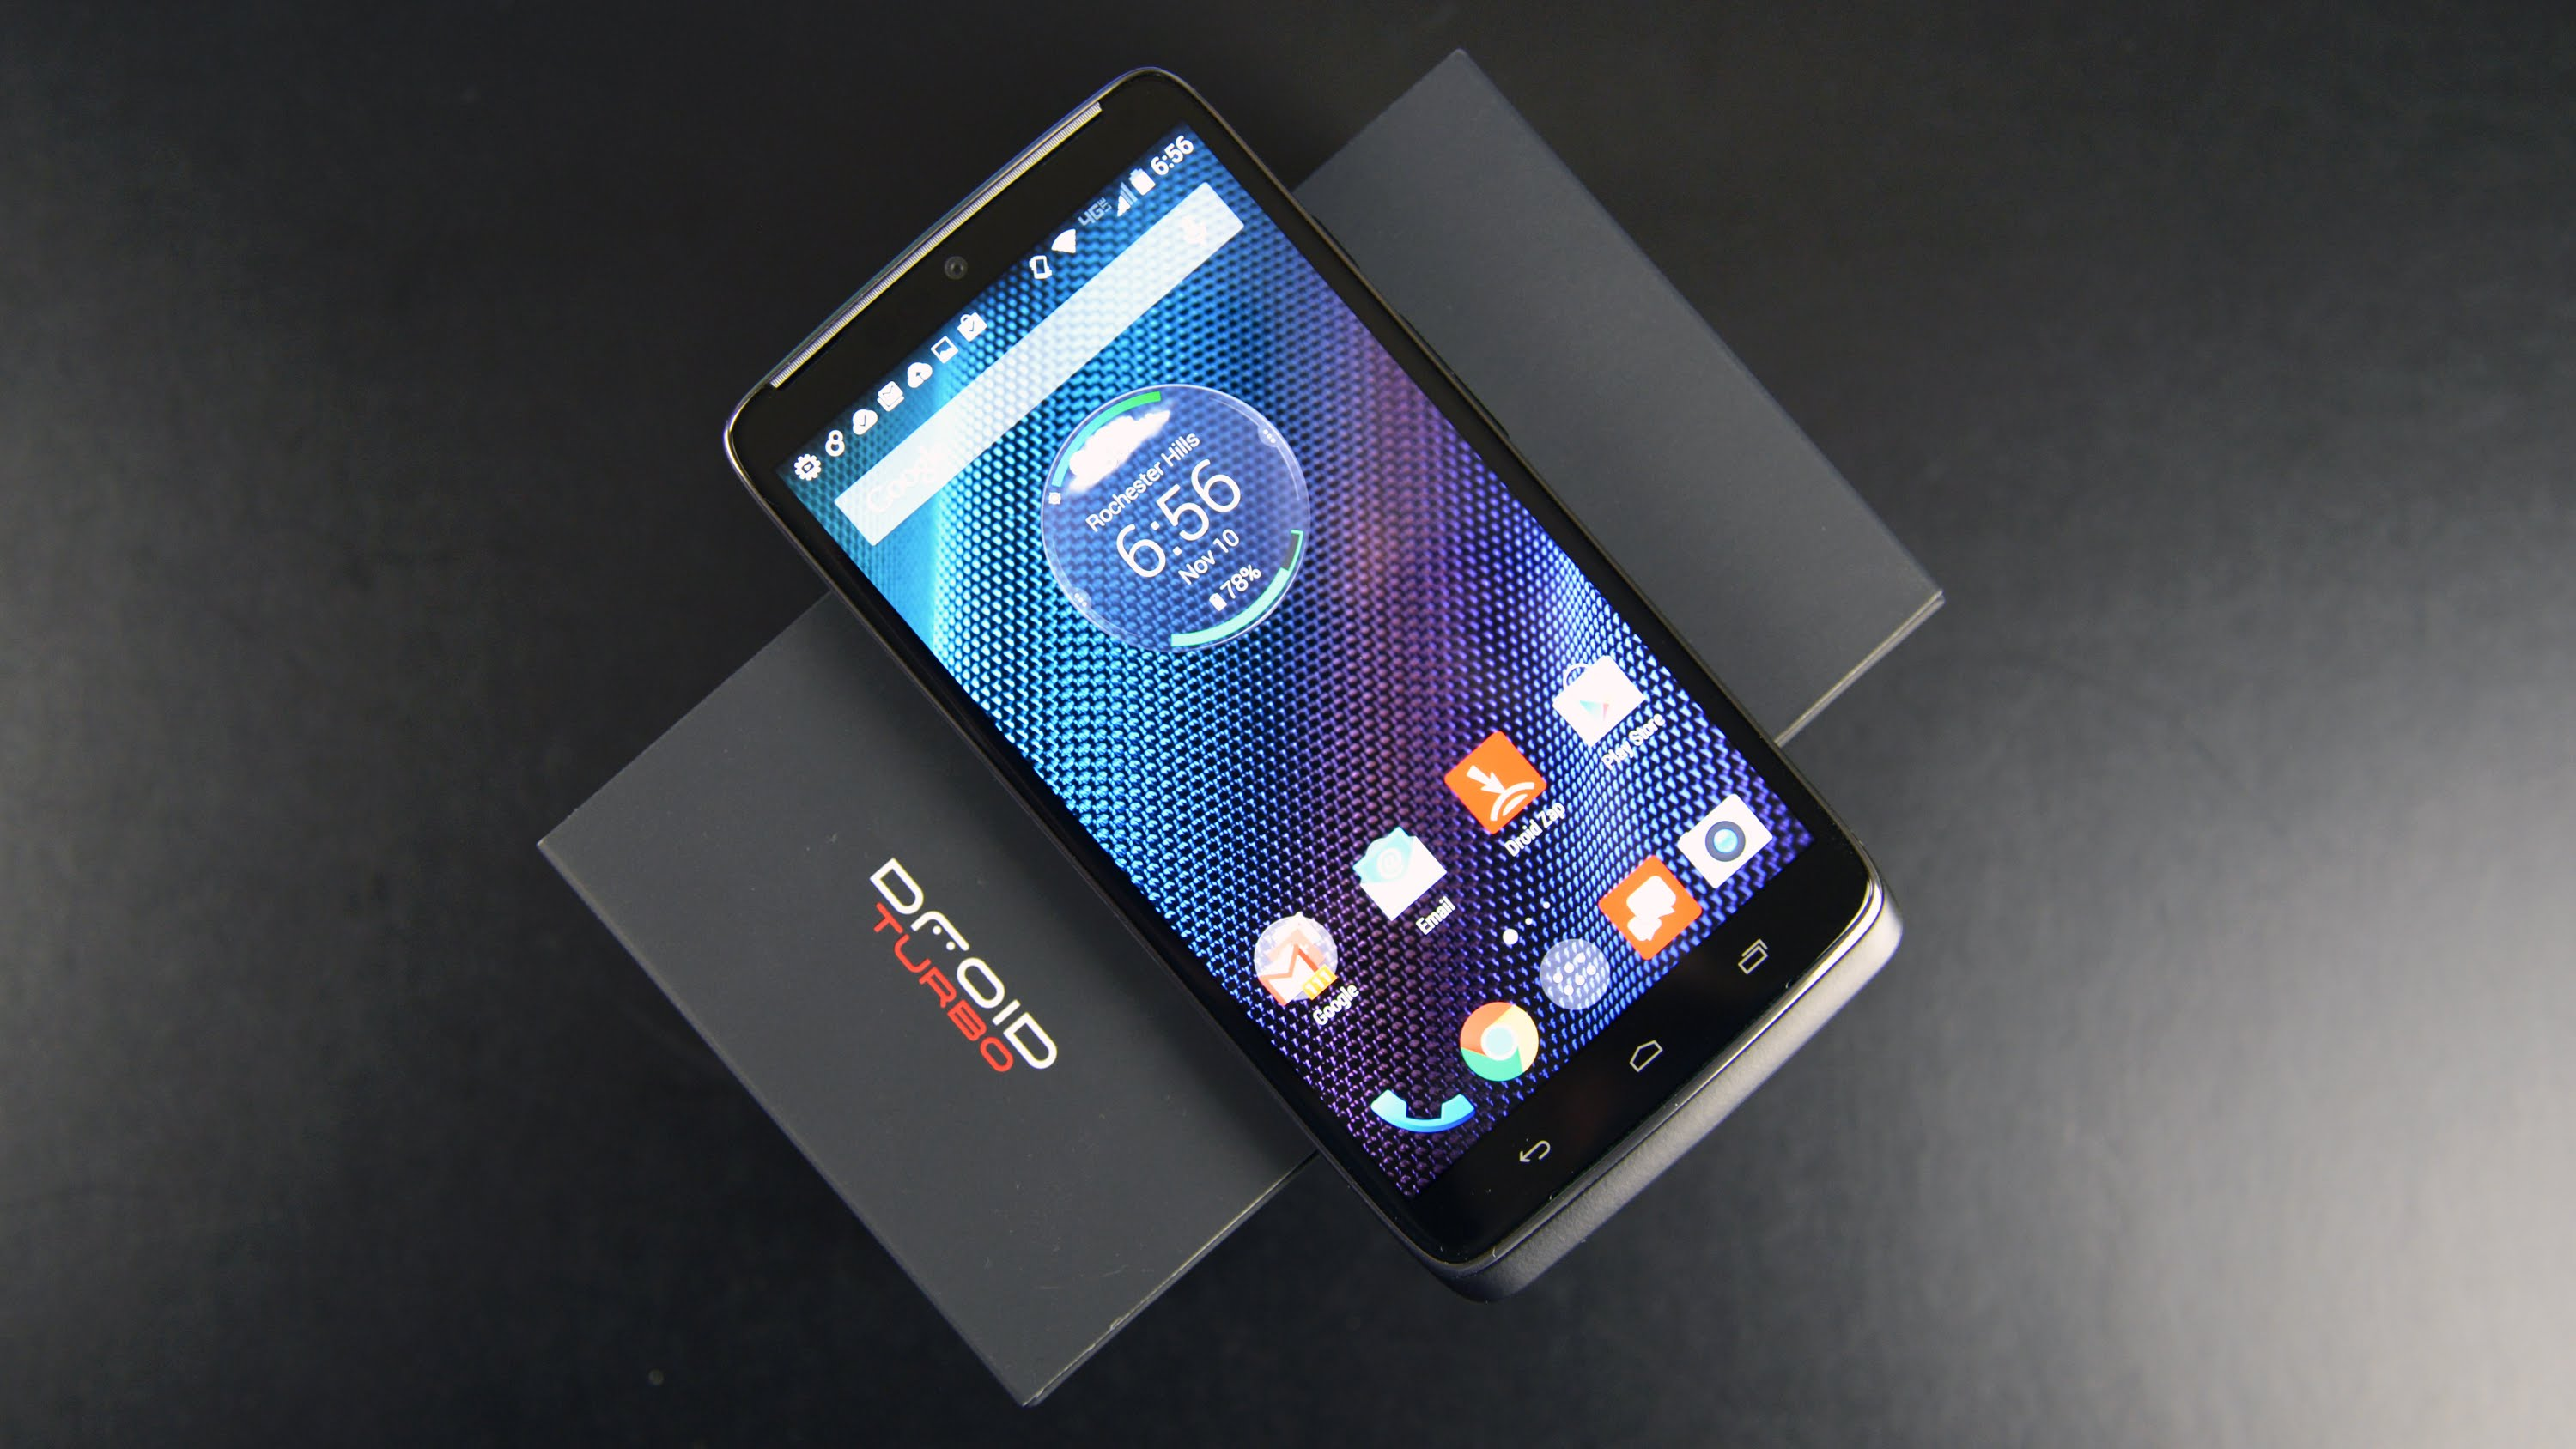 Motorolla Droid Turbo badfive